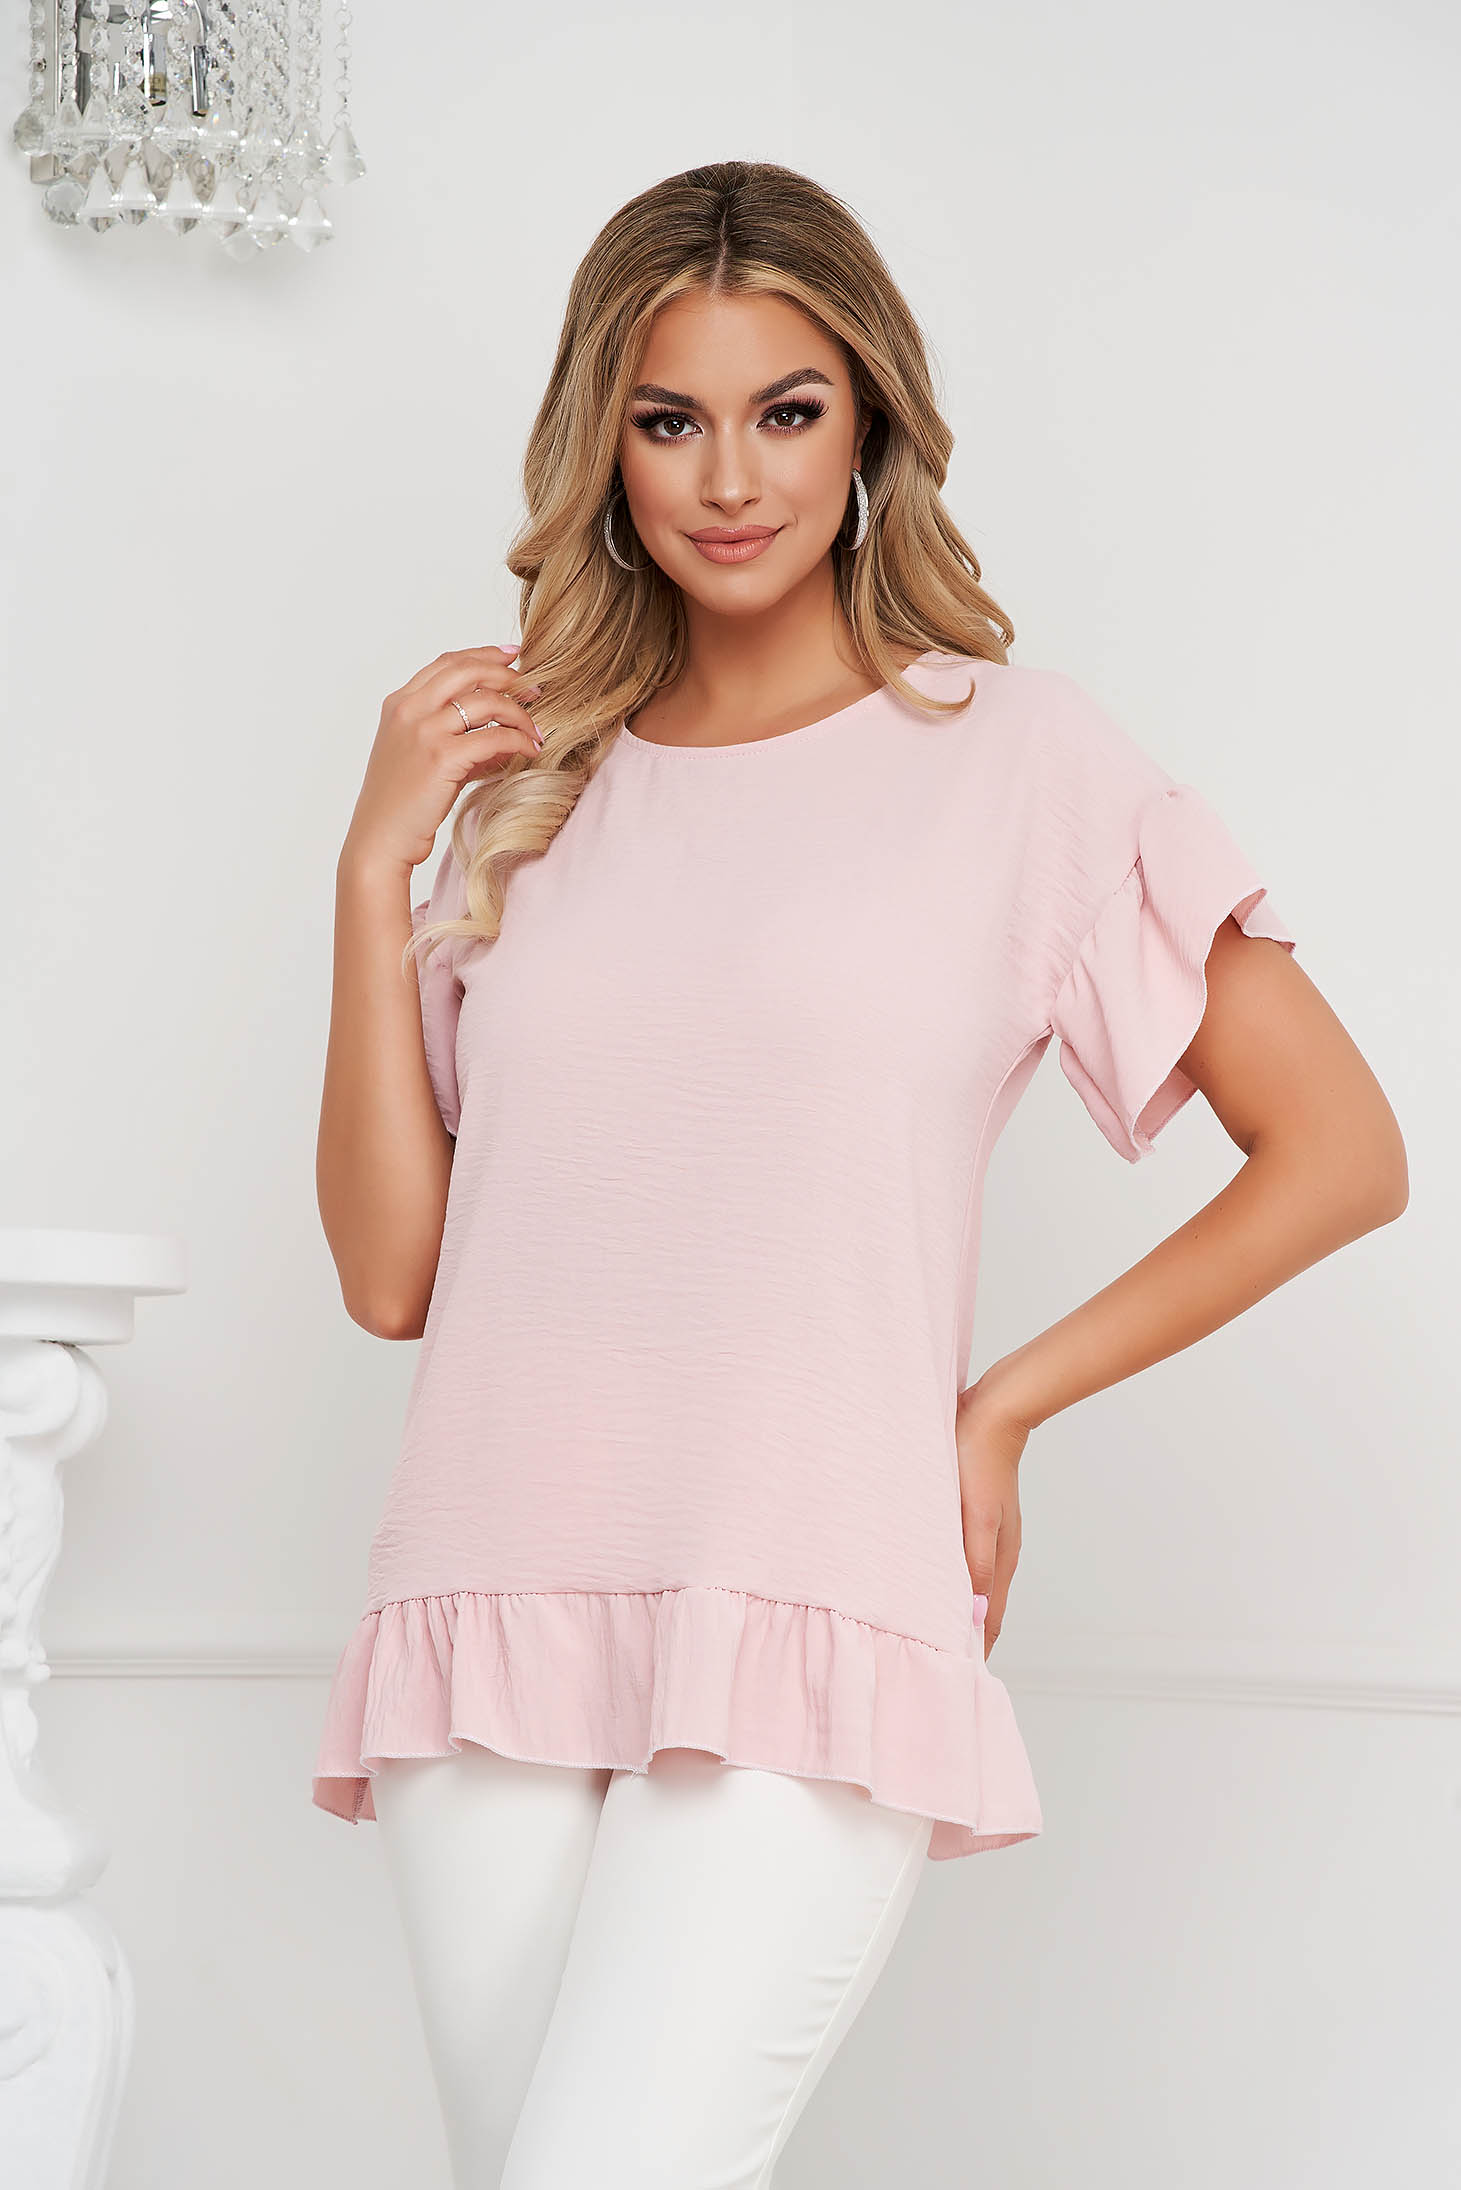 Lightpink women`s blouse loose fit airy fabric with ruffle details